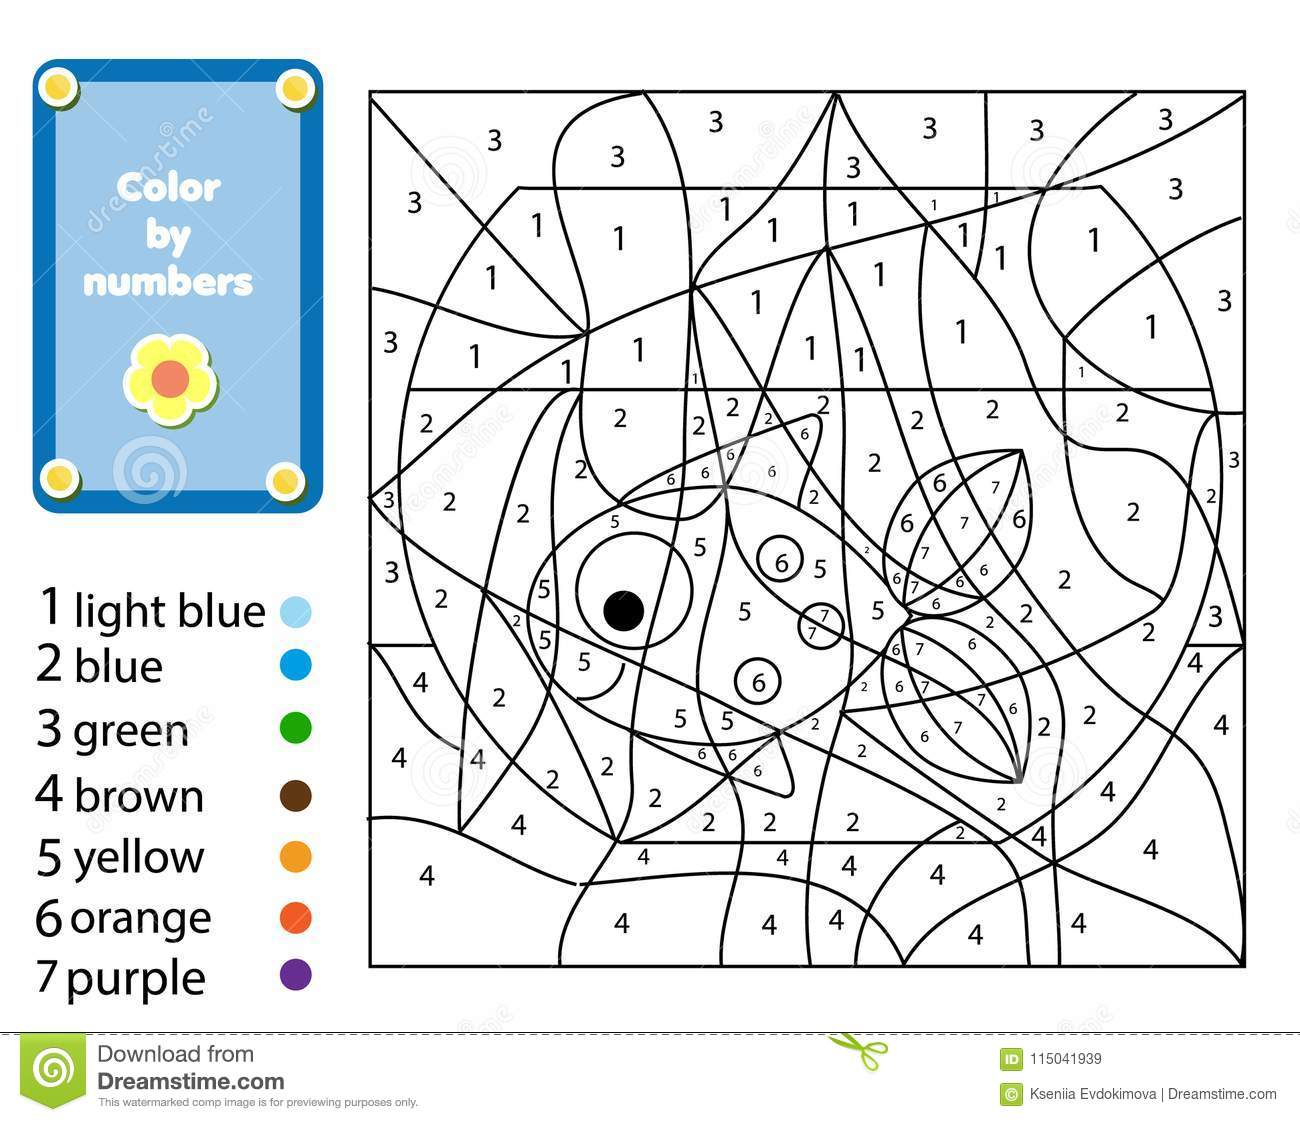 Paint By Numbers Worksheet